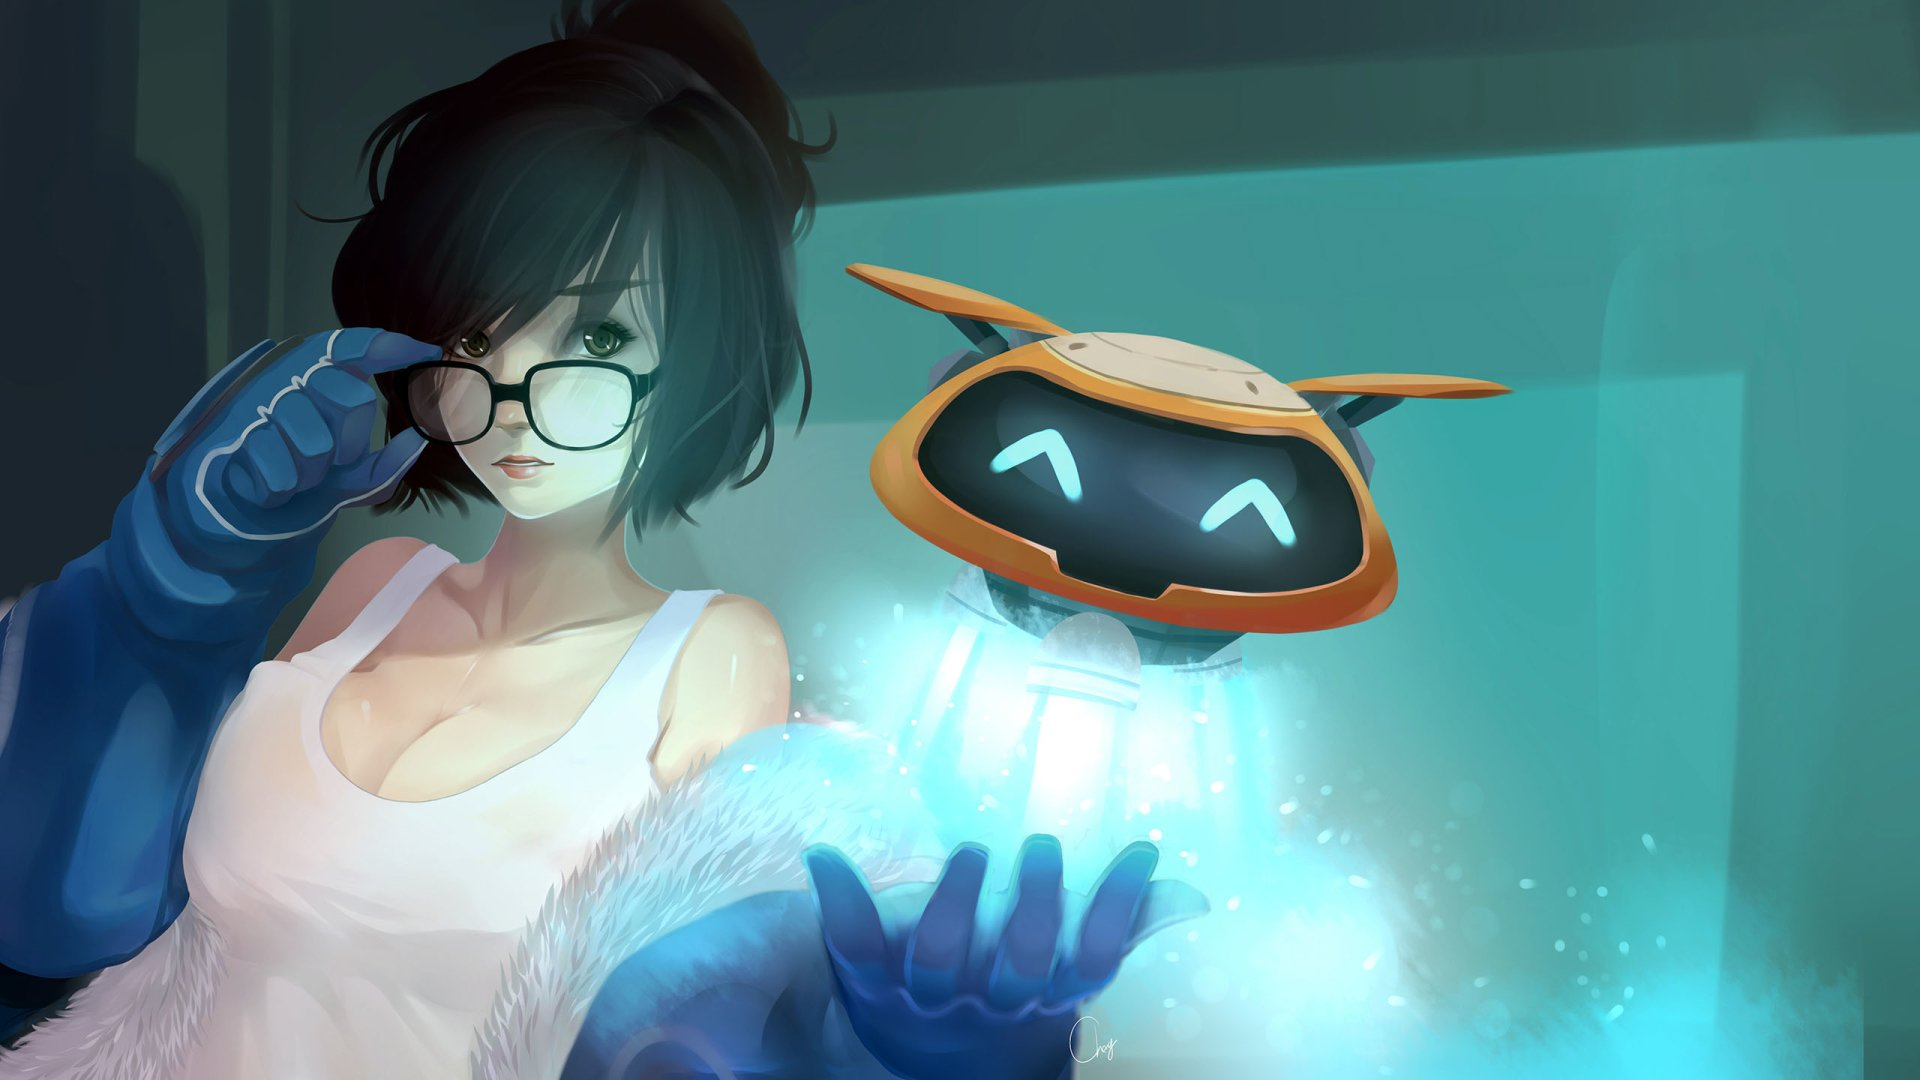 Video Game - Overwatch  Mei (Overwatch) Long Hair Black Hair Glasses Black Eyes Glove Robot Wallpaper